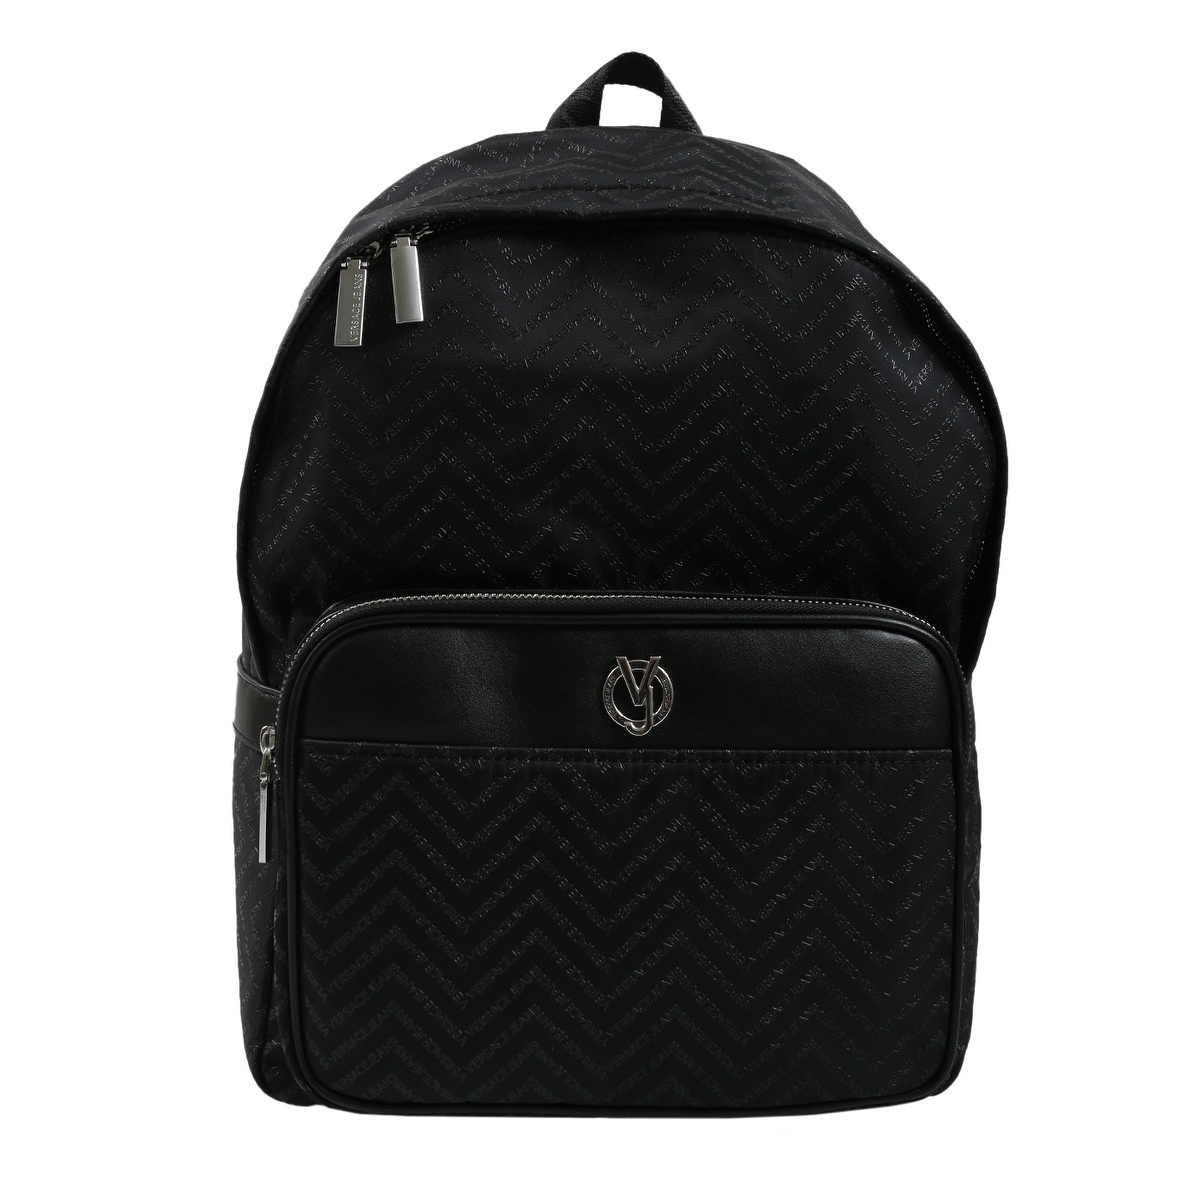 2ad275b7ca7f Shop Versace EE1YSBB15 E899 Black Backpack - 10.75-15.5-7 - Free Shipping  Today - Overstock - 25601599